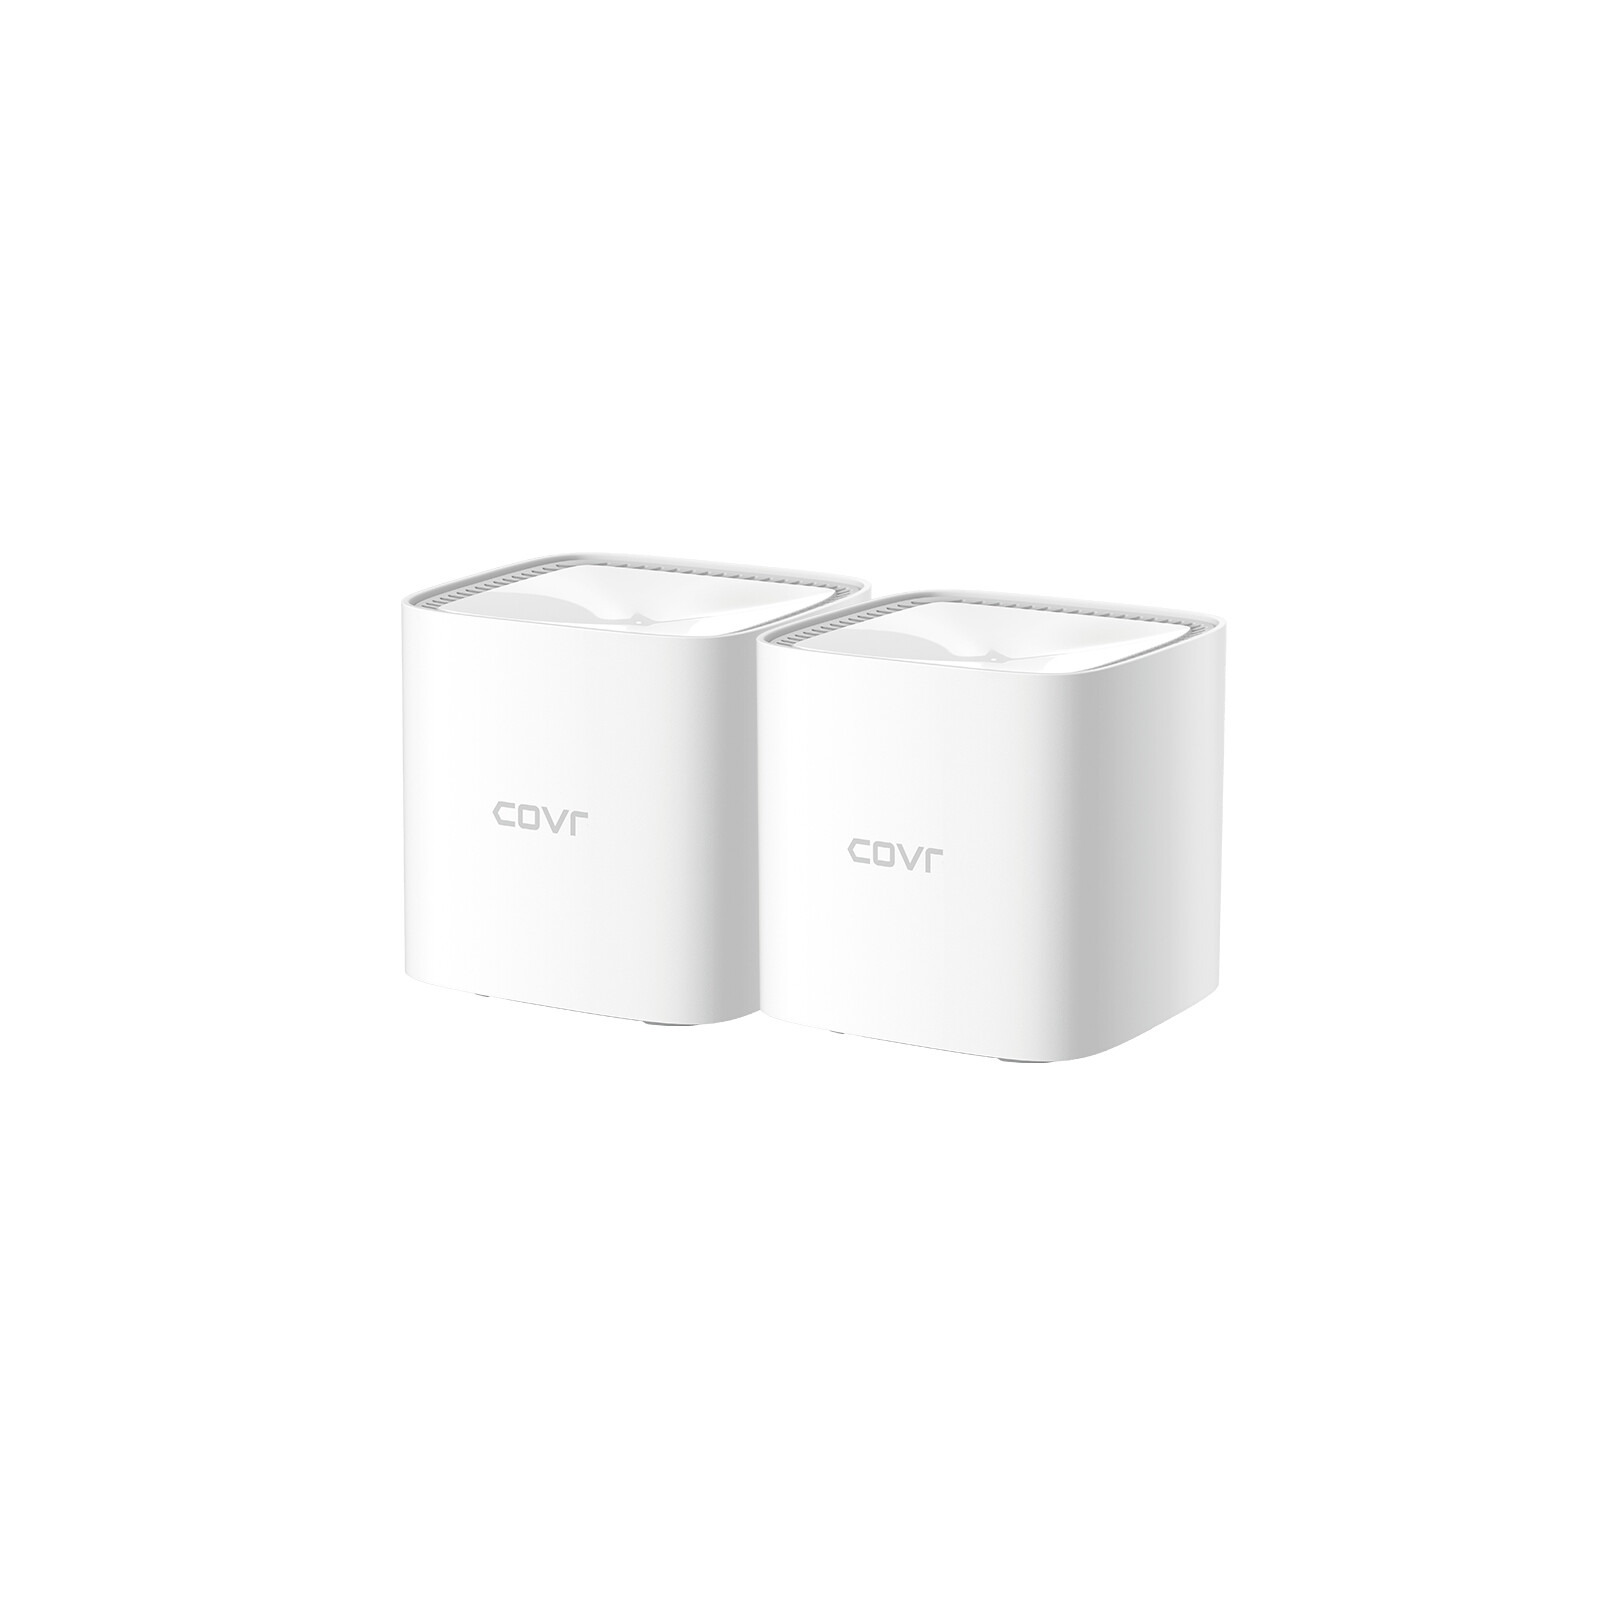 D-Link Covr Whole Home COVR-1102 Mesh Router